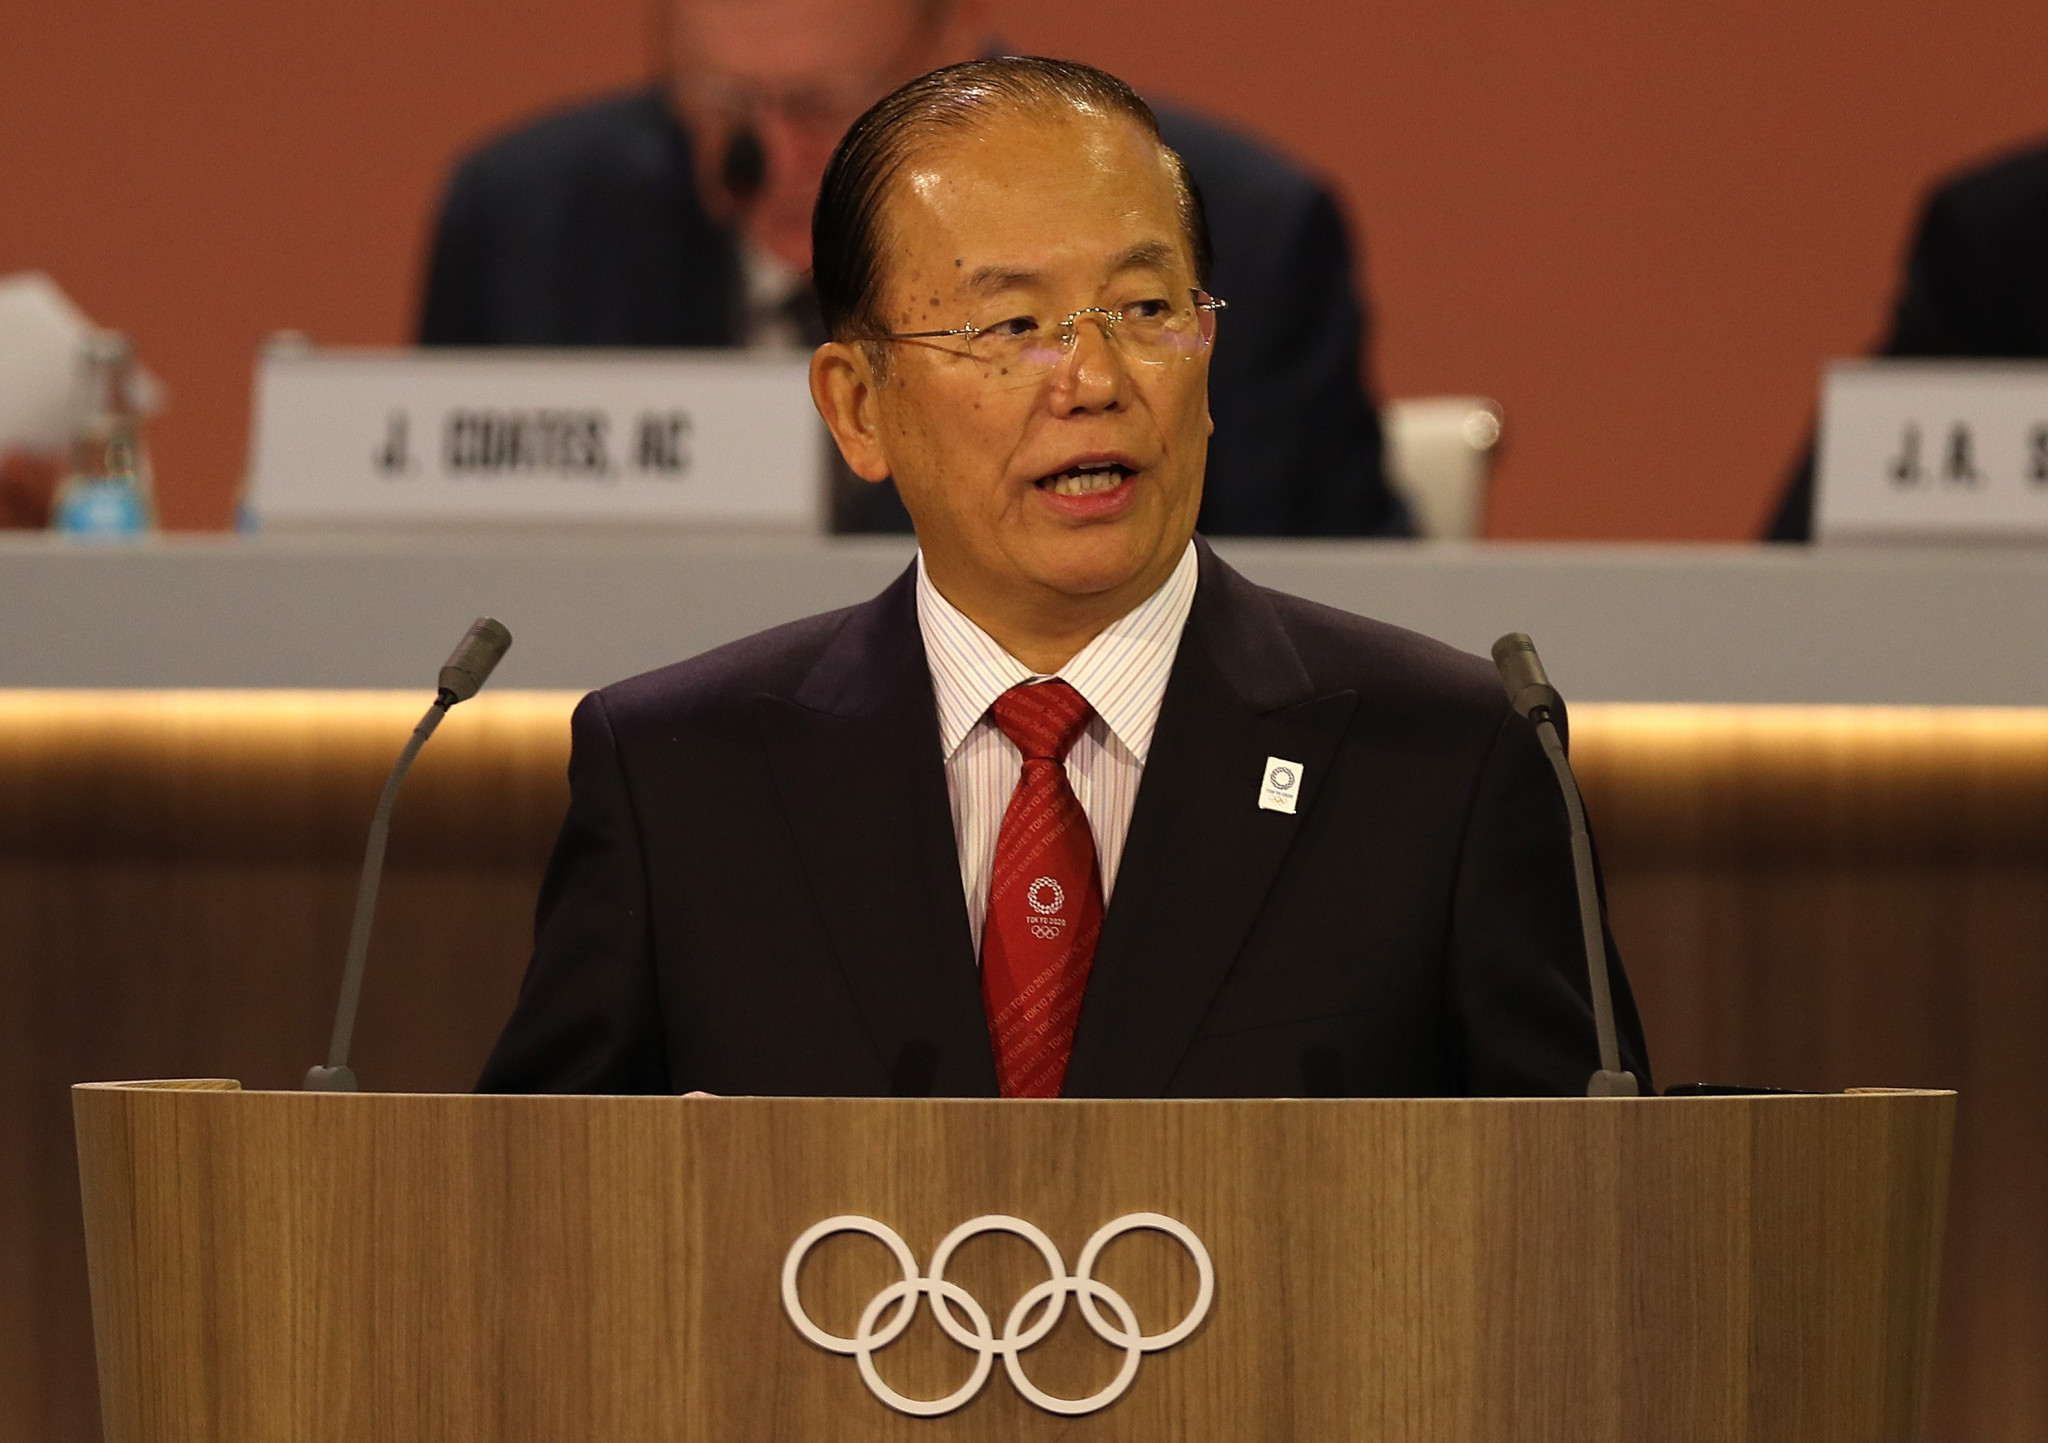 Toshirō Mutō, chief executive of the Tokyo 2020 Organising Committee, has acknowledged that there cannot be certainly over staging the Games even though they have been postponed to the summer of 2021 ©Getty Images